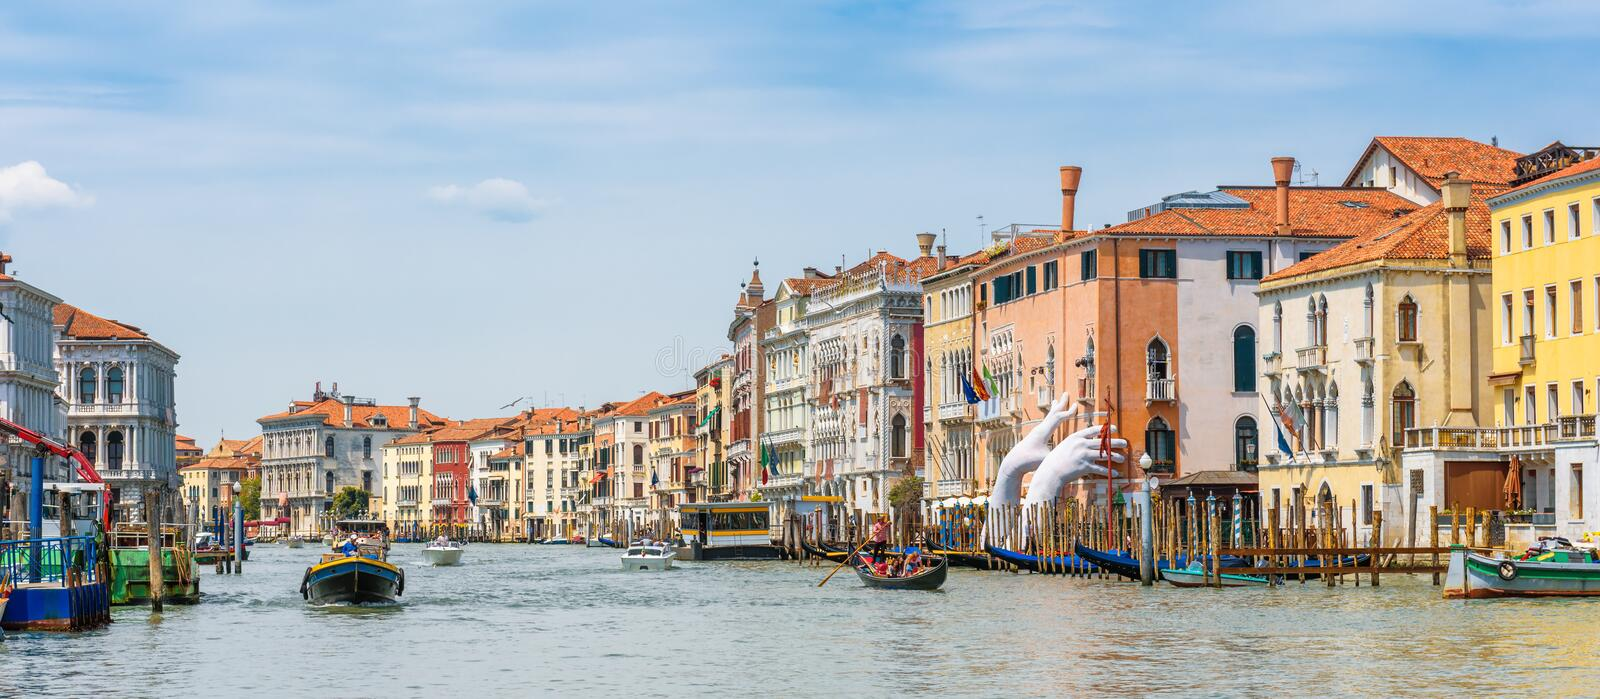 Panorama of the famous Grand Canal, Venice, Italy royalty free stock images